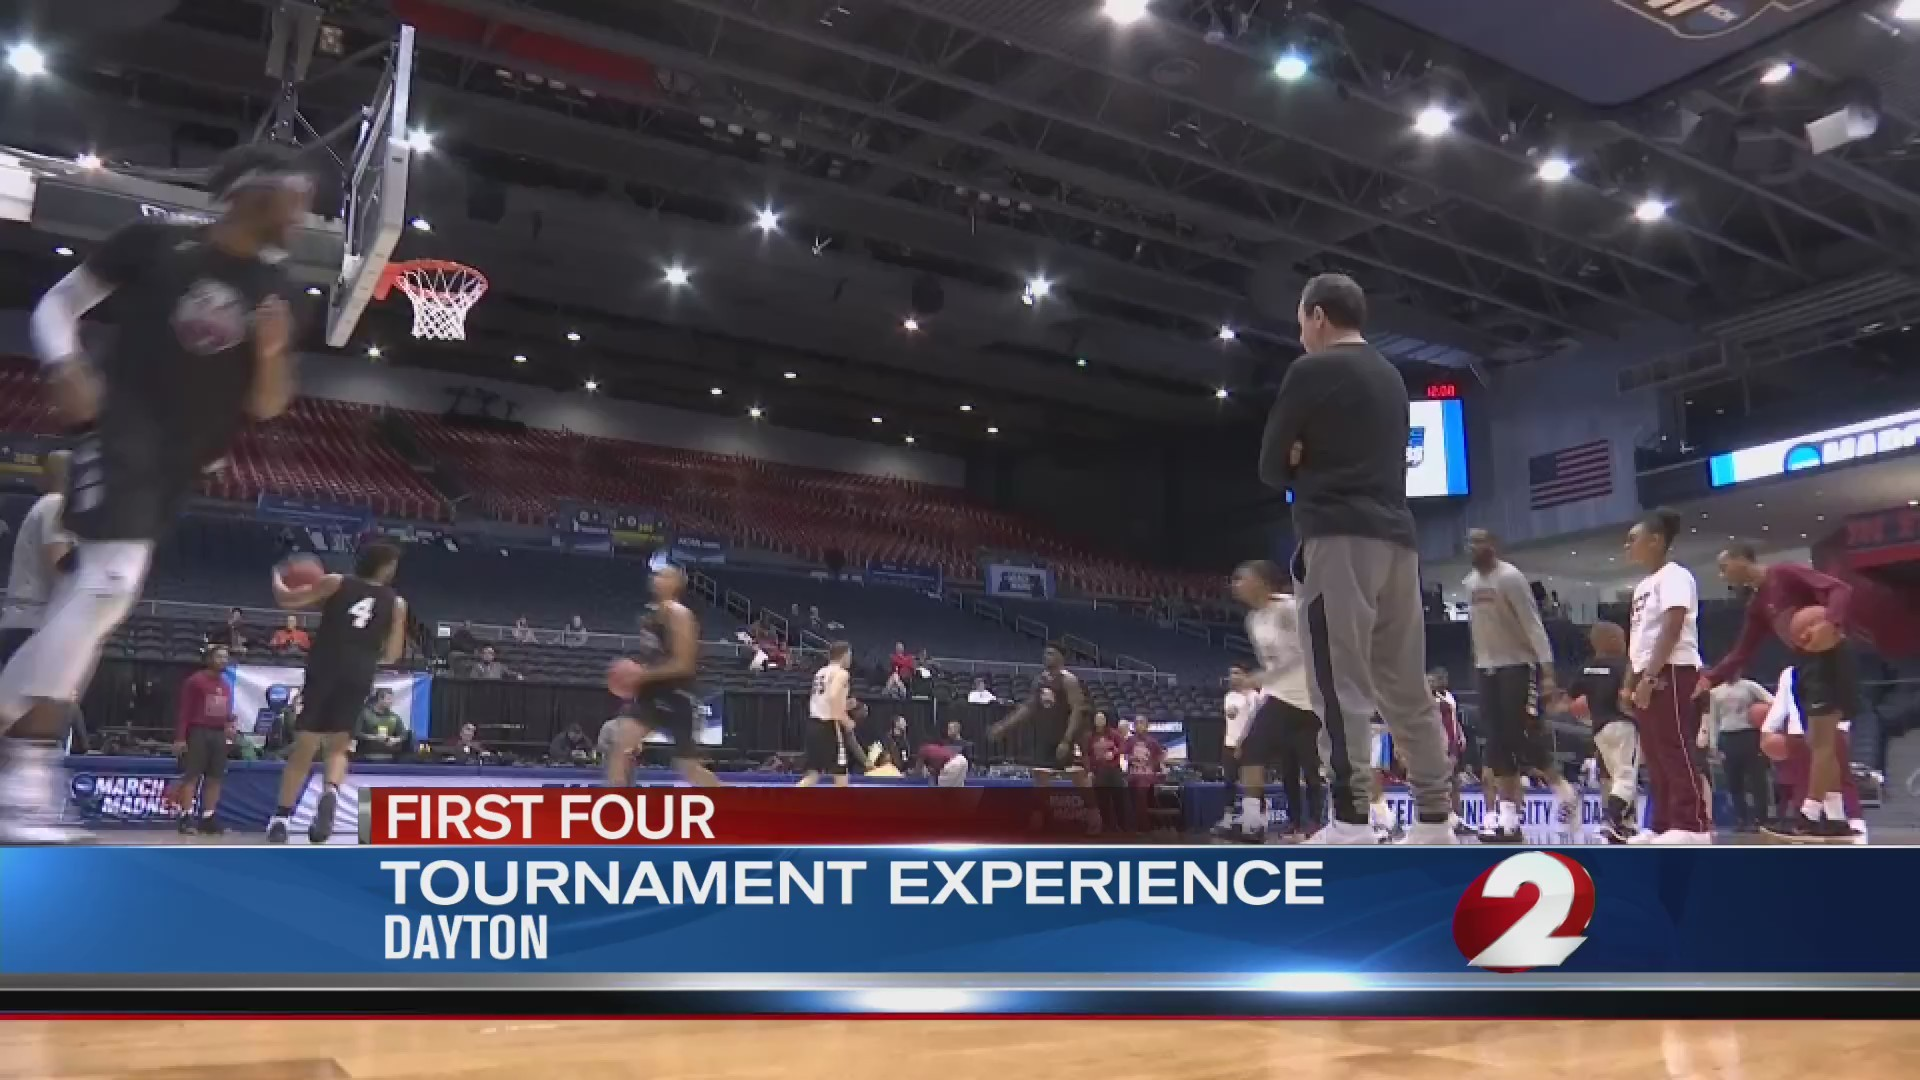 Fans flock to UD Arena ahead of First Four tipoff